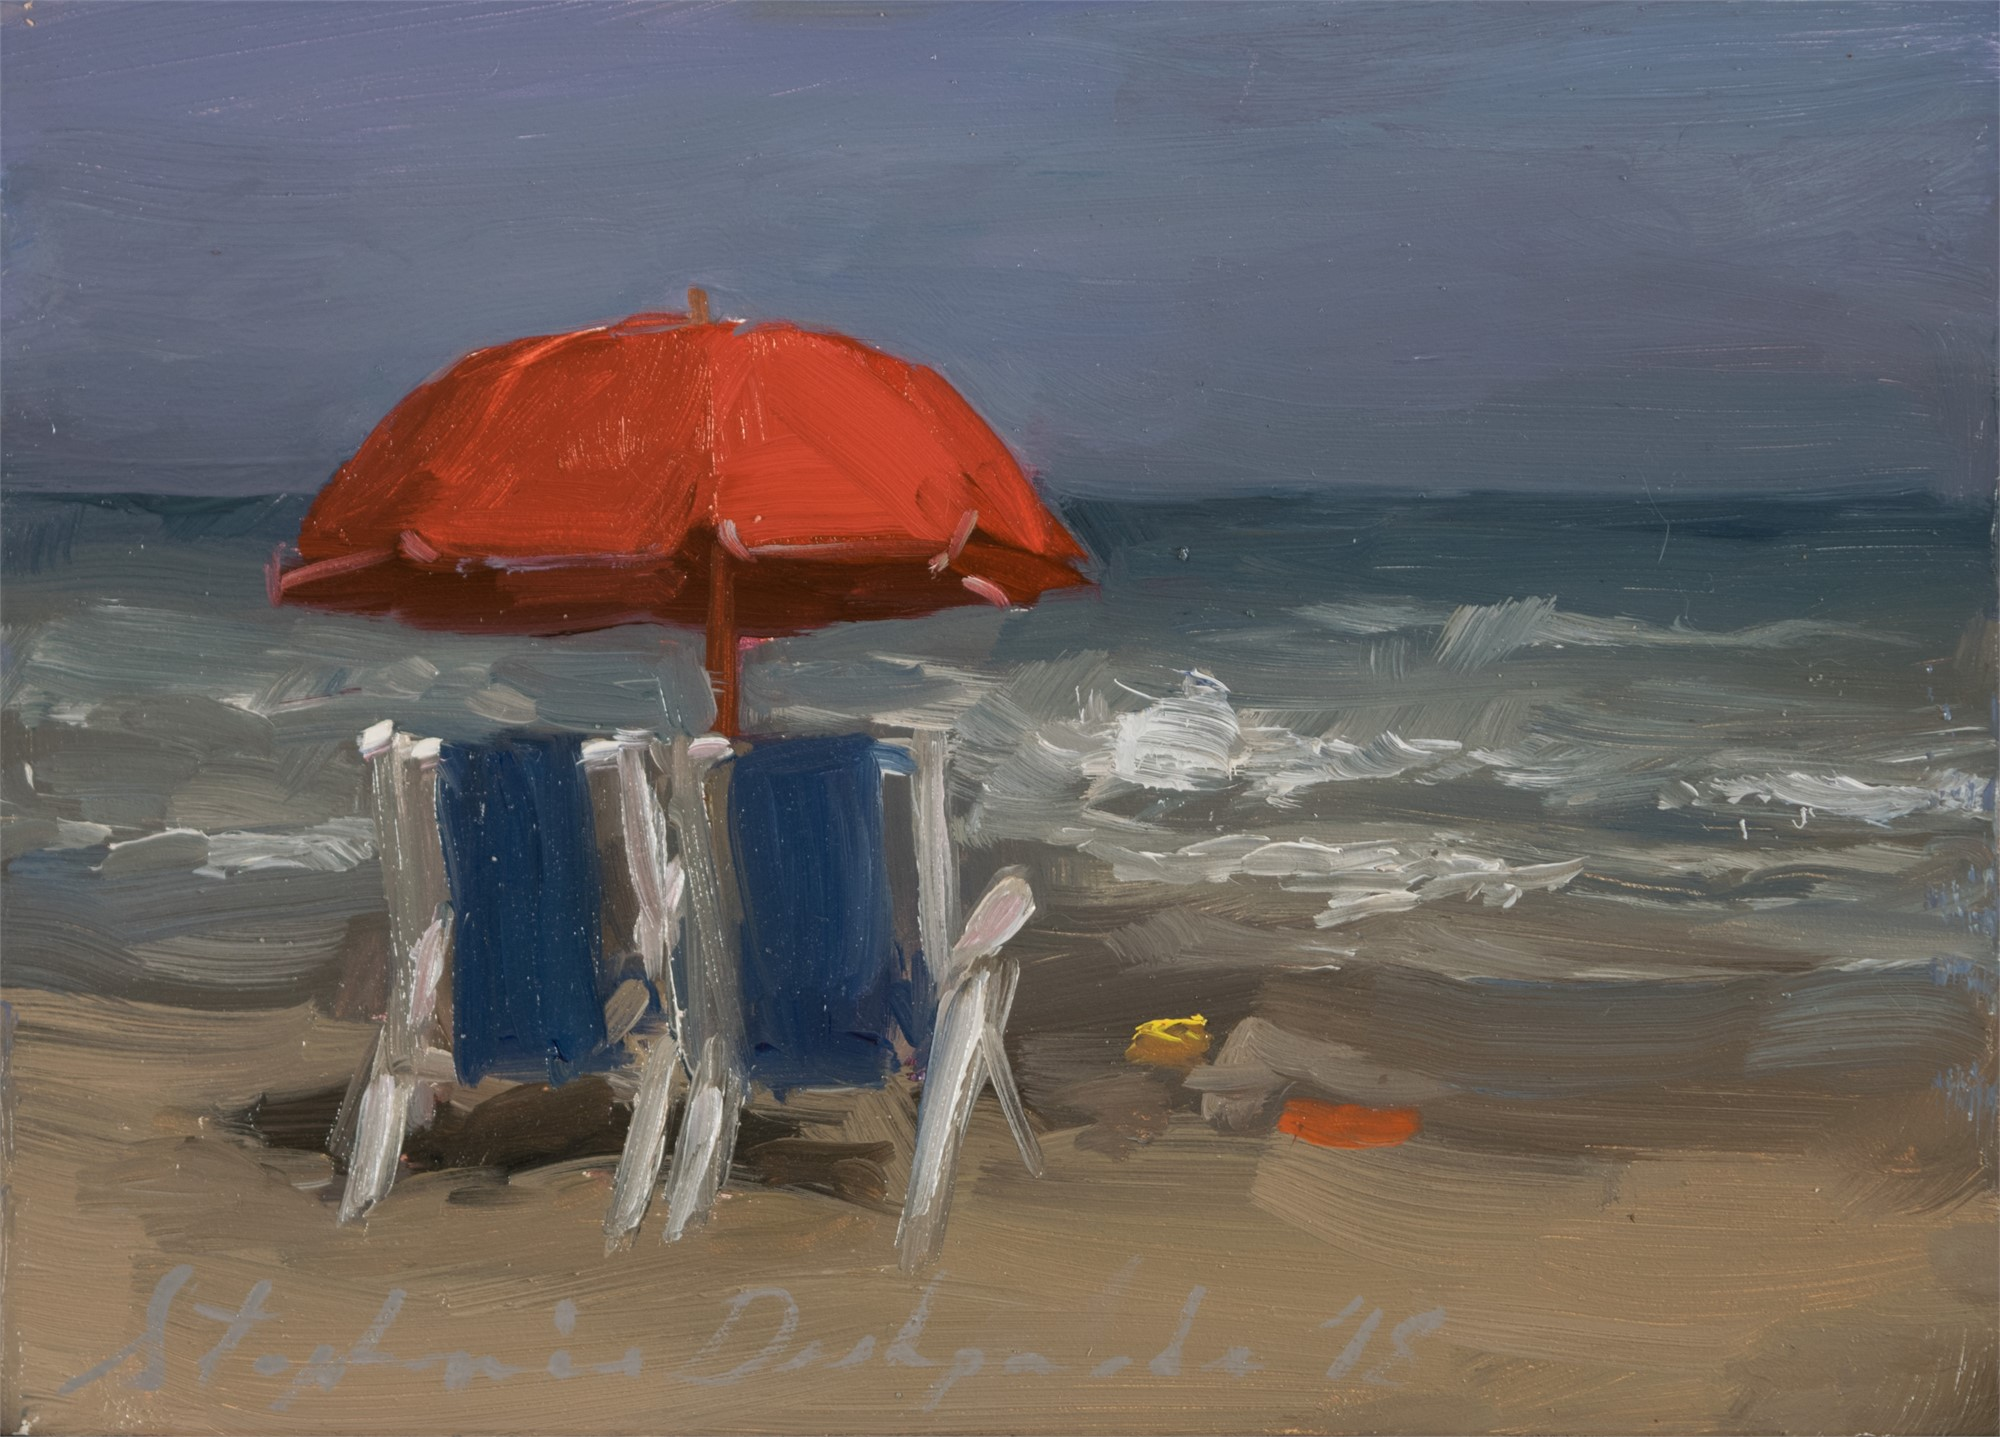 Red Umbrella by Stephanie Deshpande